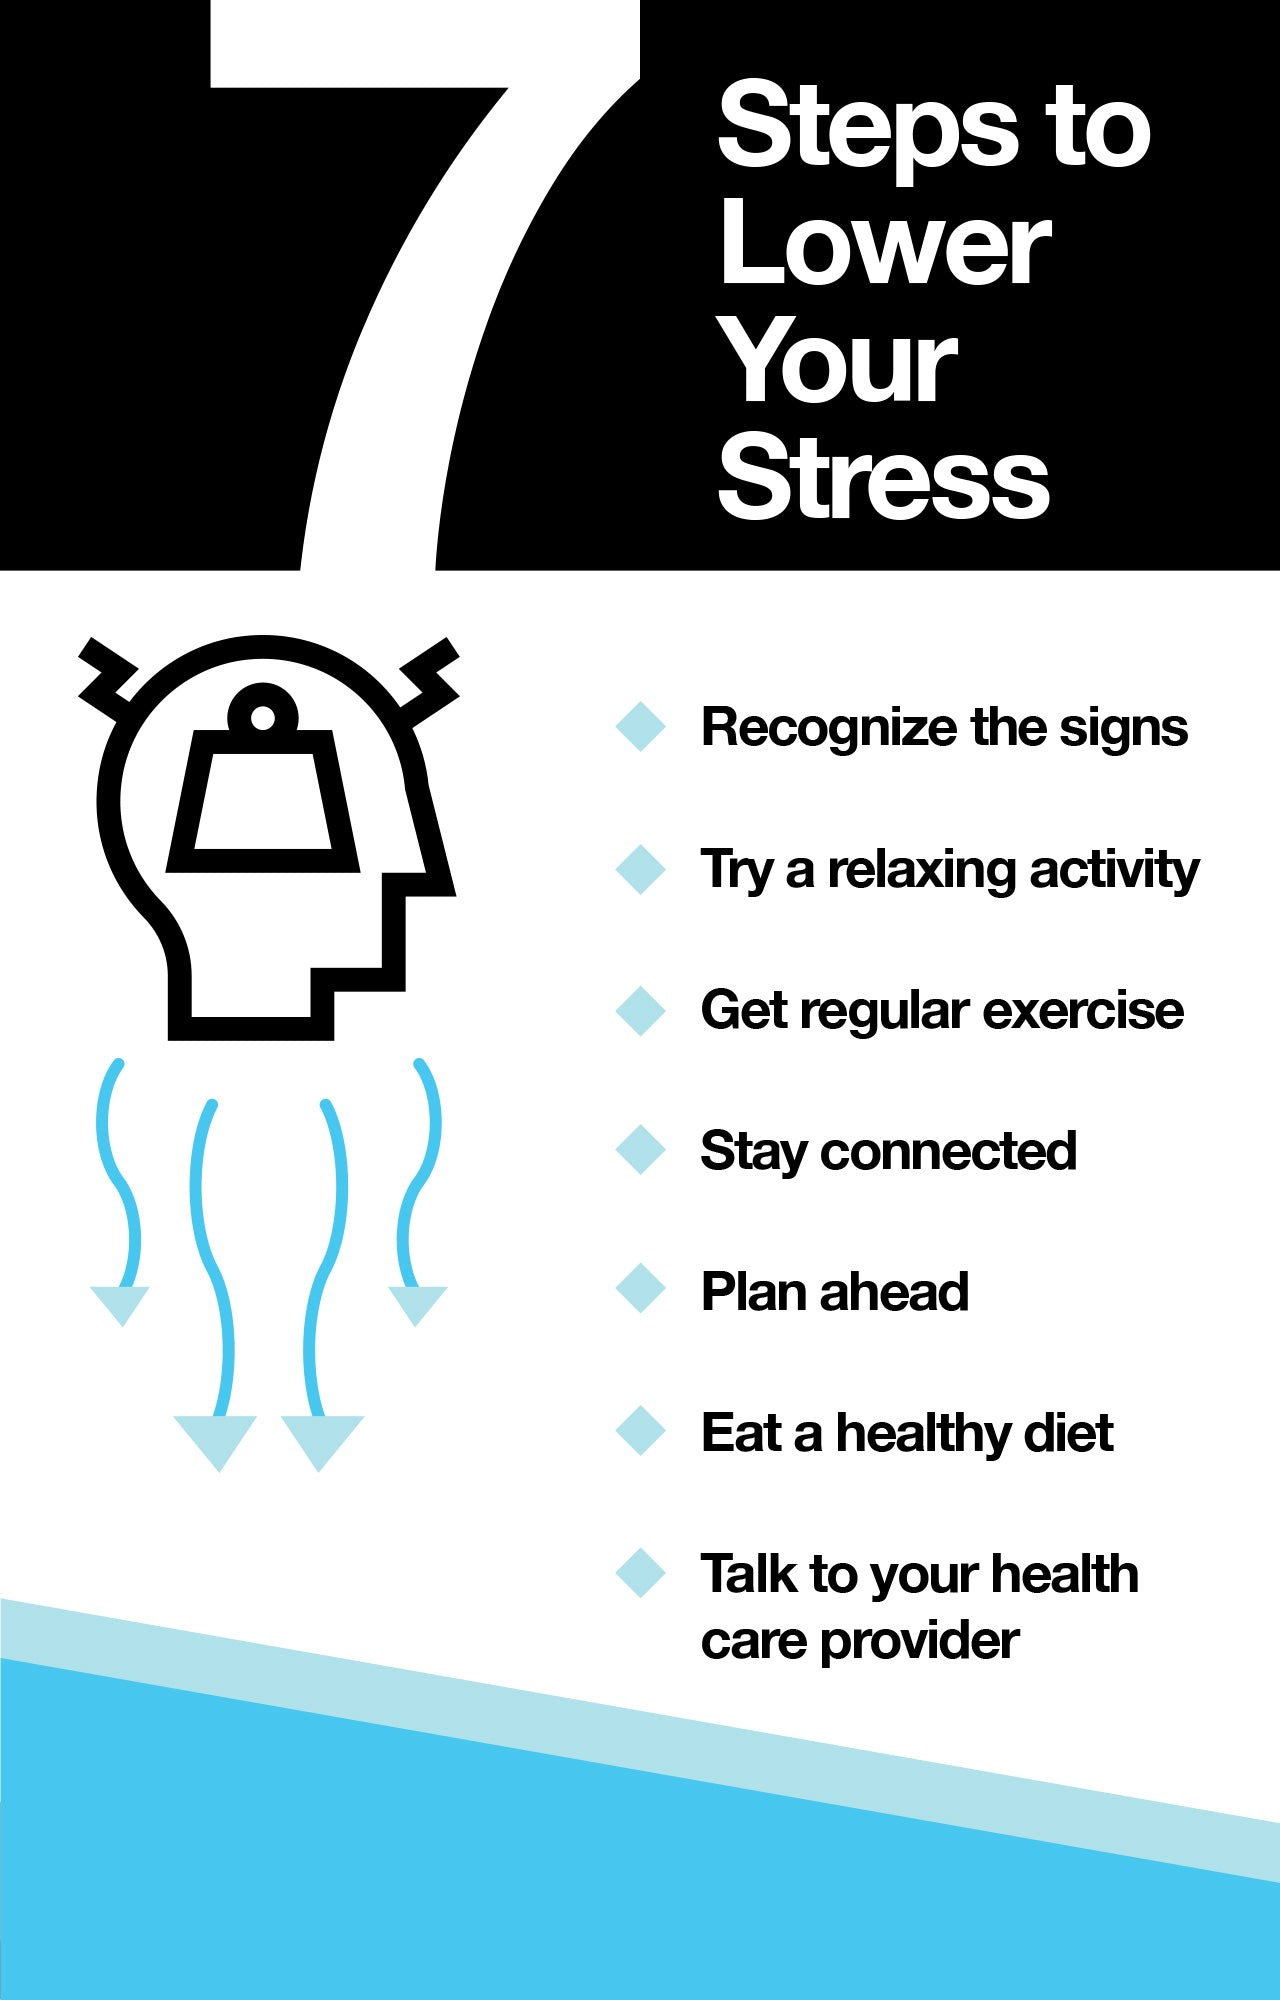 Ways to lower stress